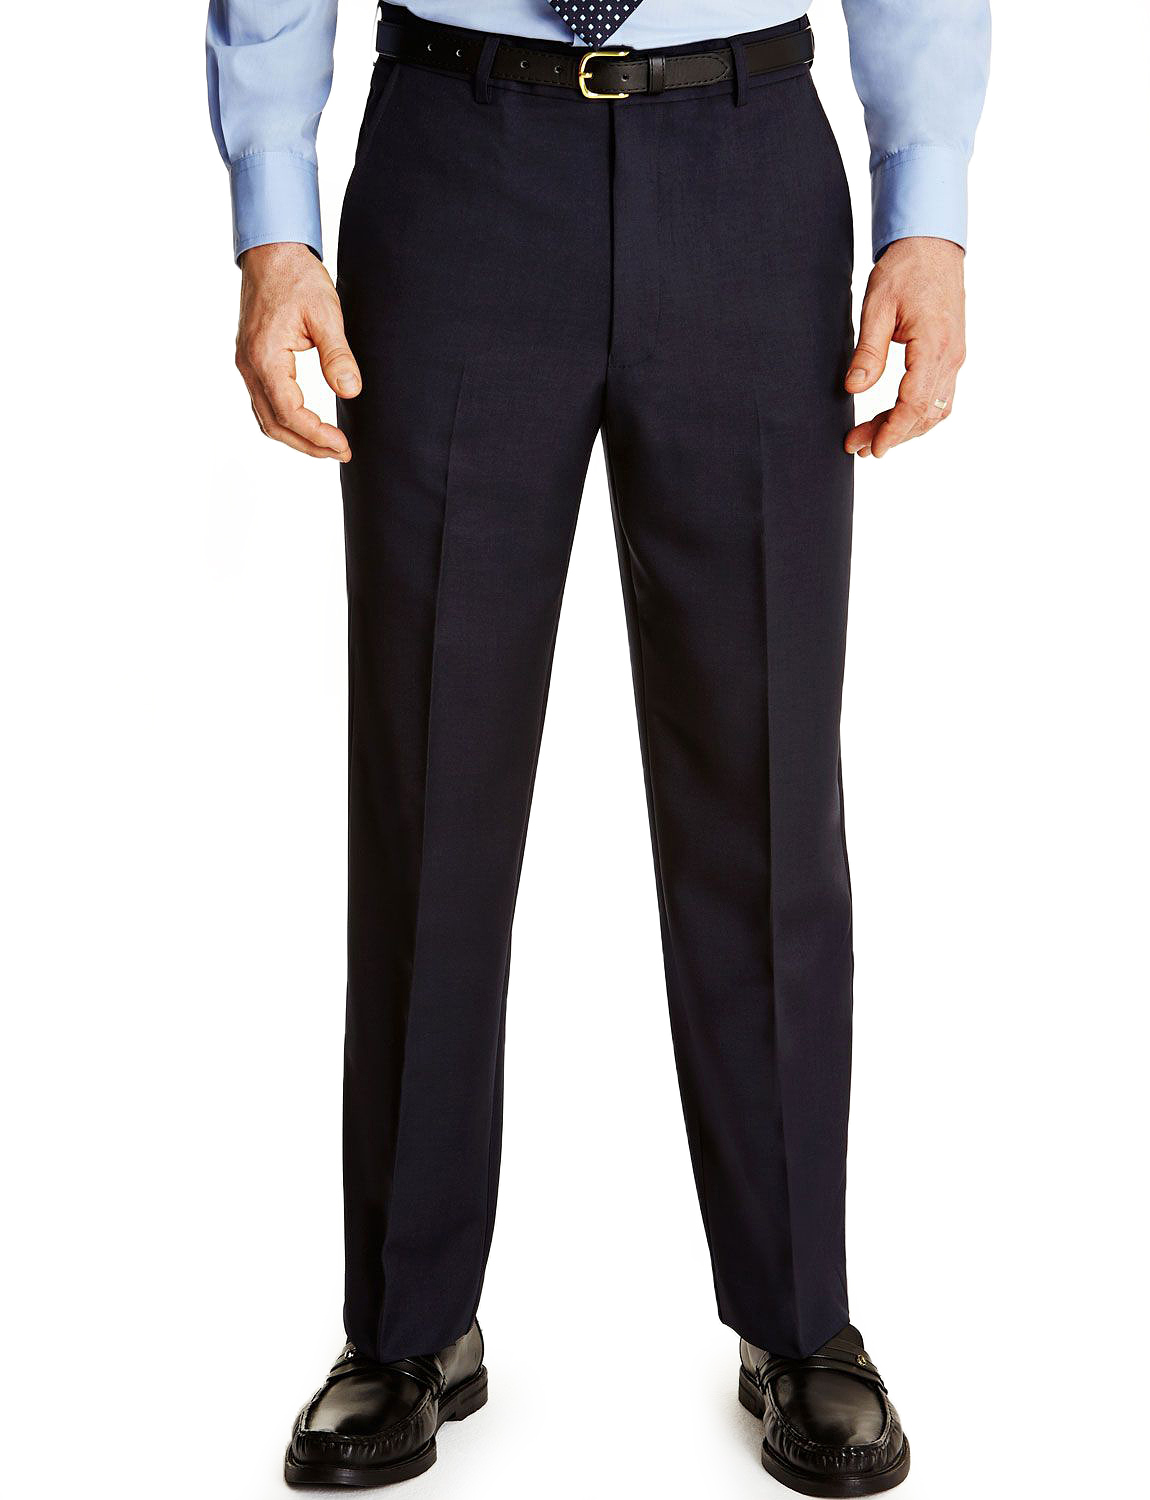 Mens-Farah-Flex-Trouser-Pants-With-Self-Adjusting-Waistband thumbnail 5